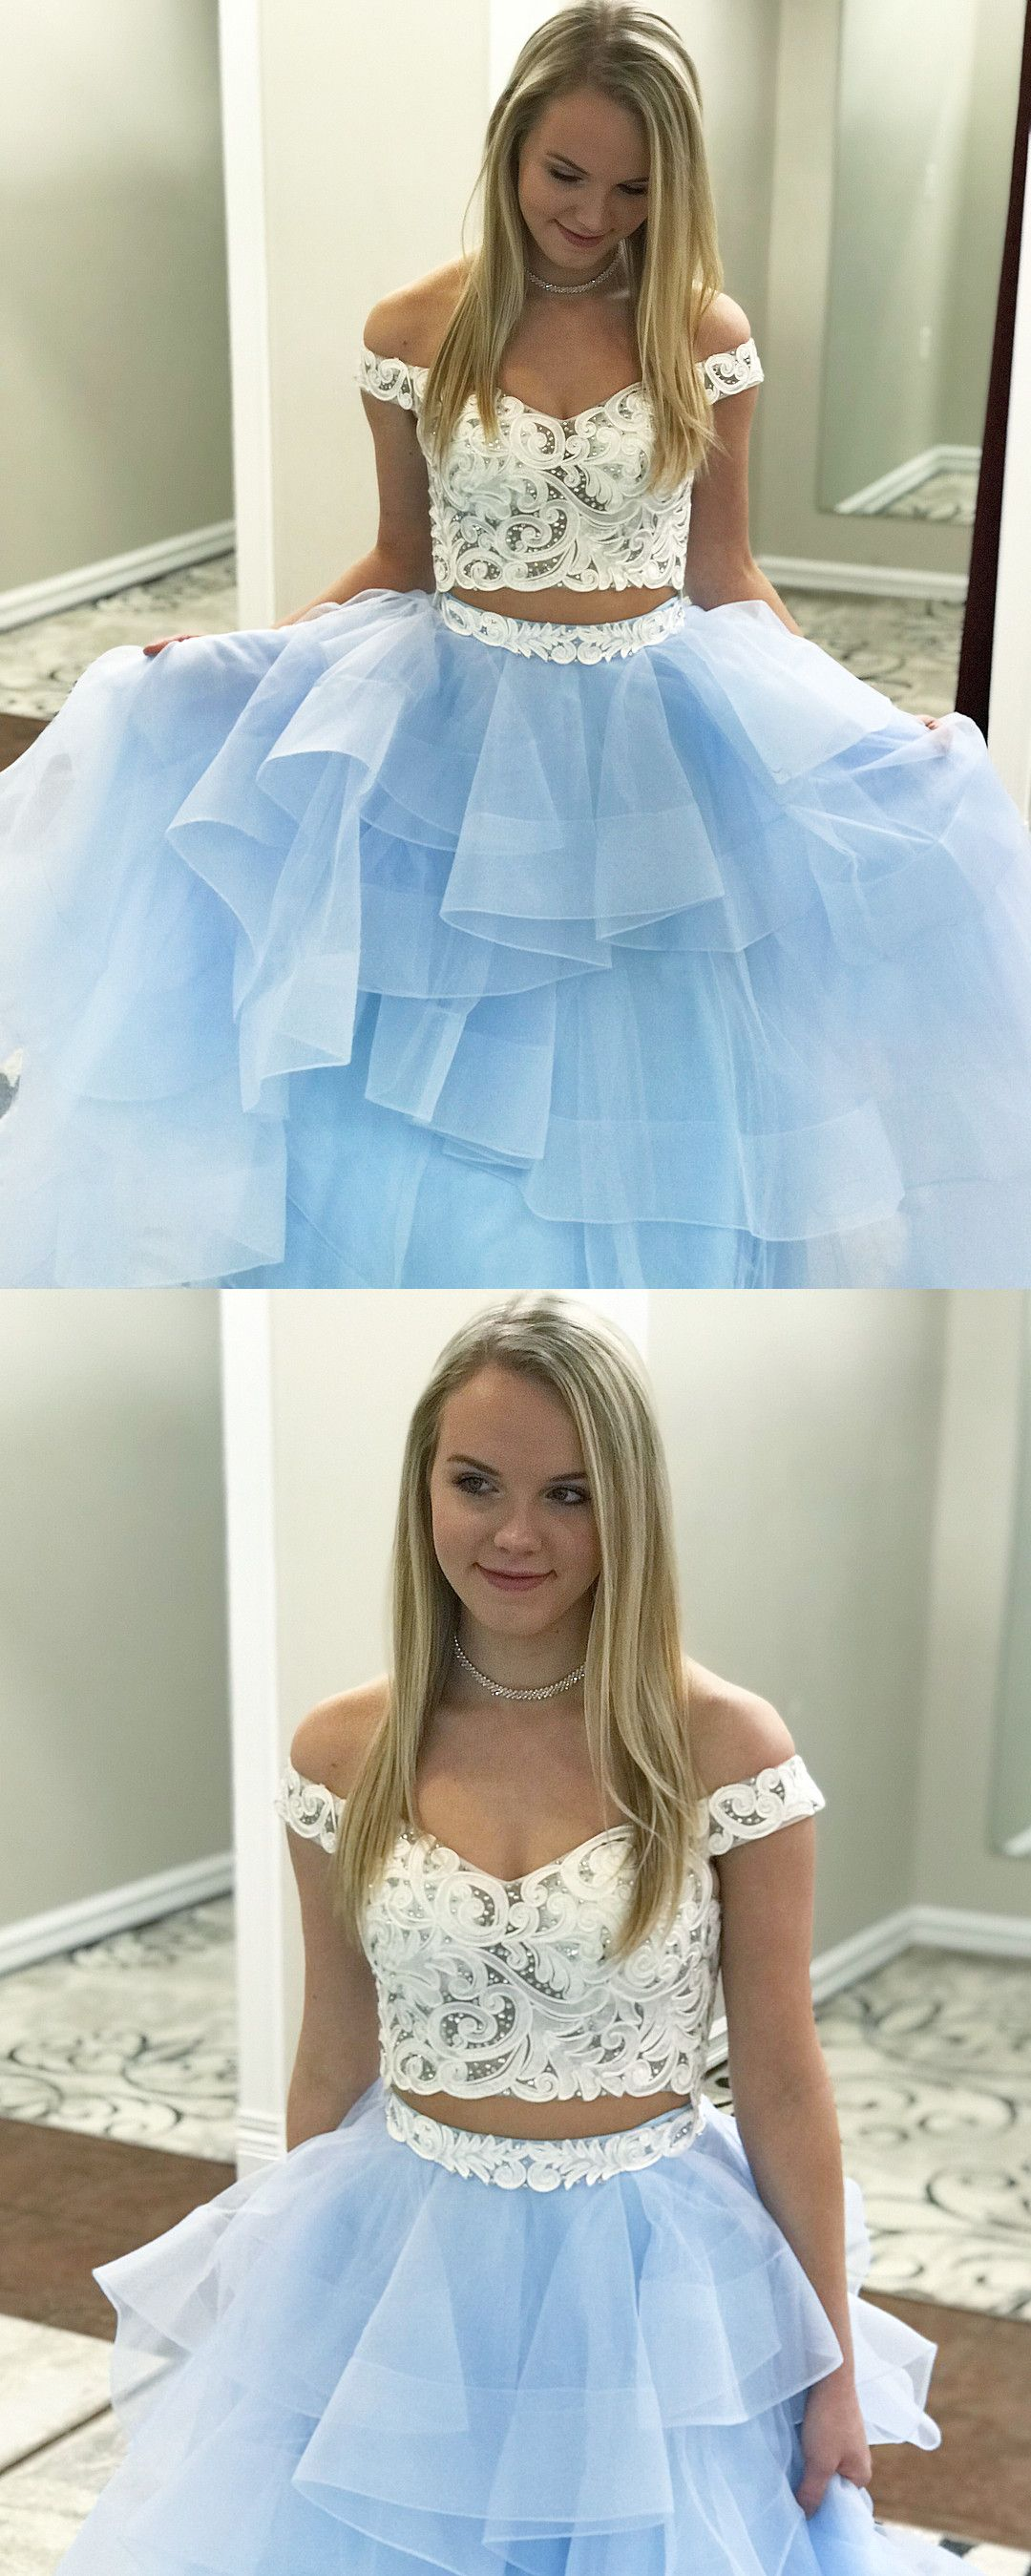 Off shoulder white and blue long prom dress from dreamdressy